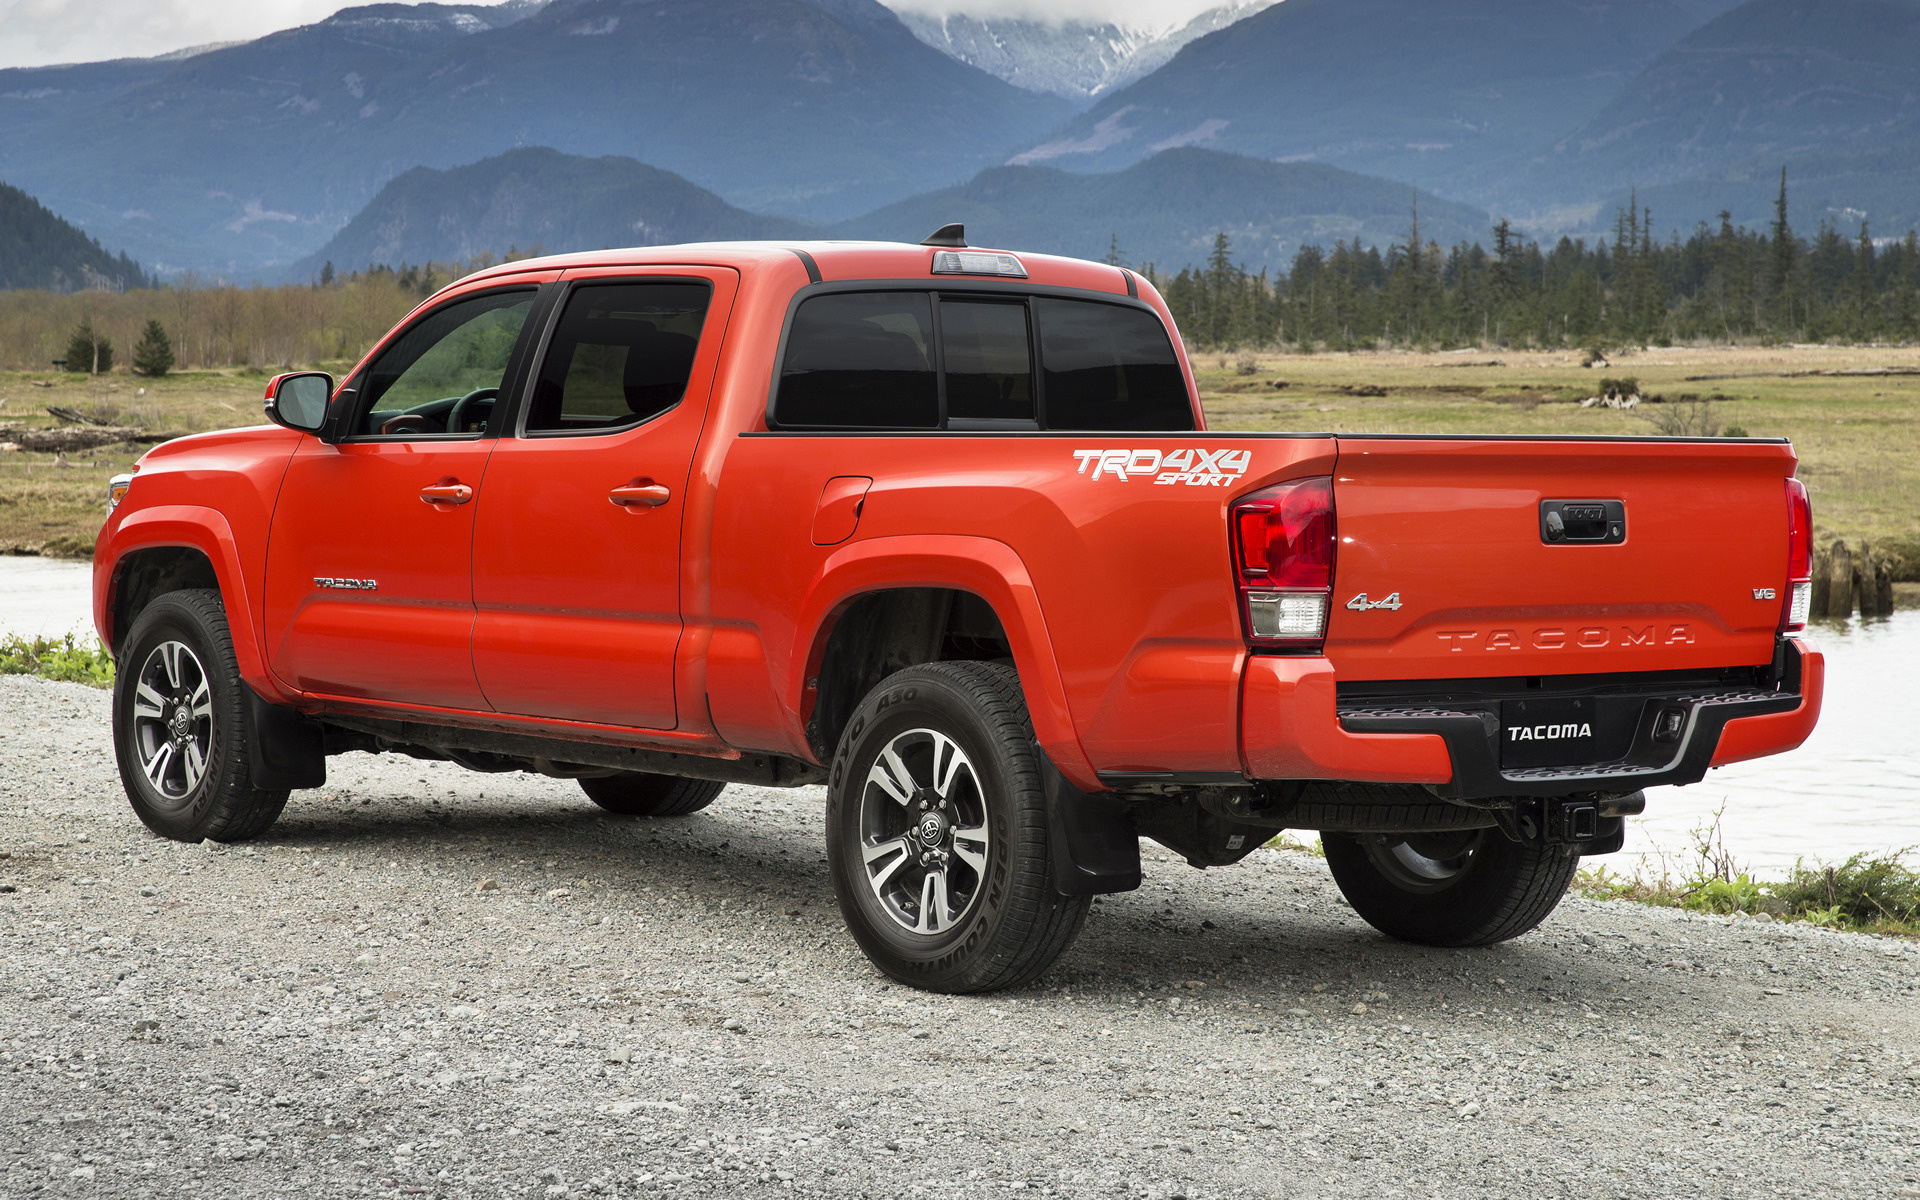 Toyota Tacoma TRD Sport Double Cab 2016 Wallpapers and HD Images 1920x1200